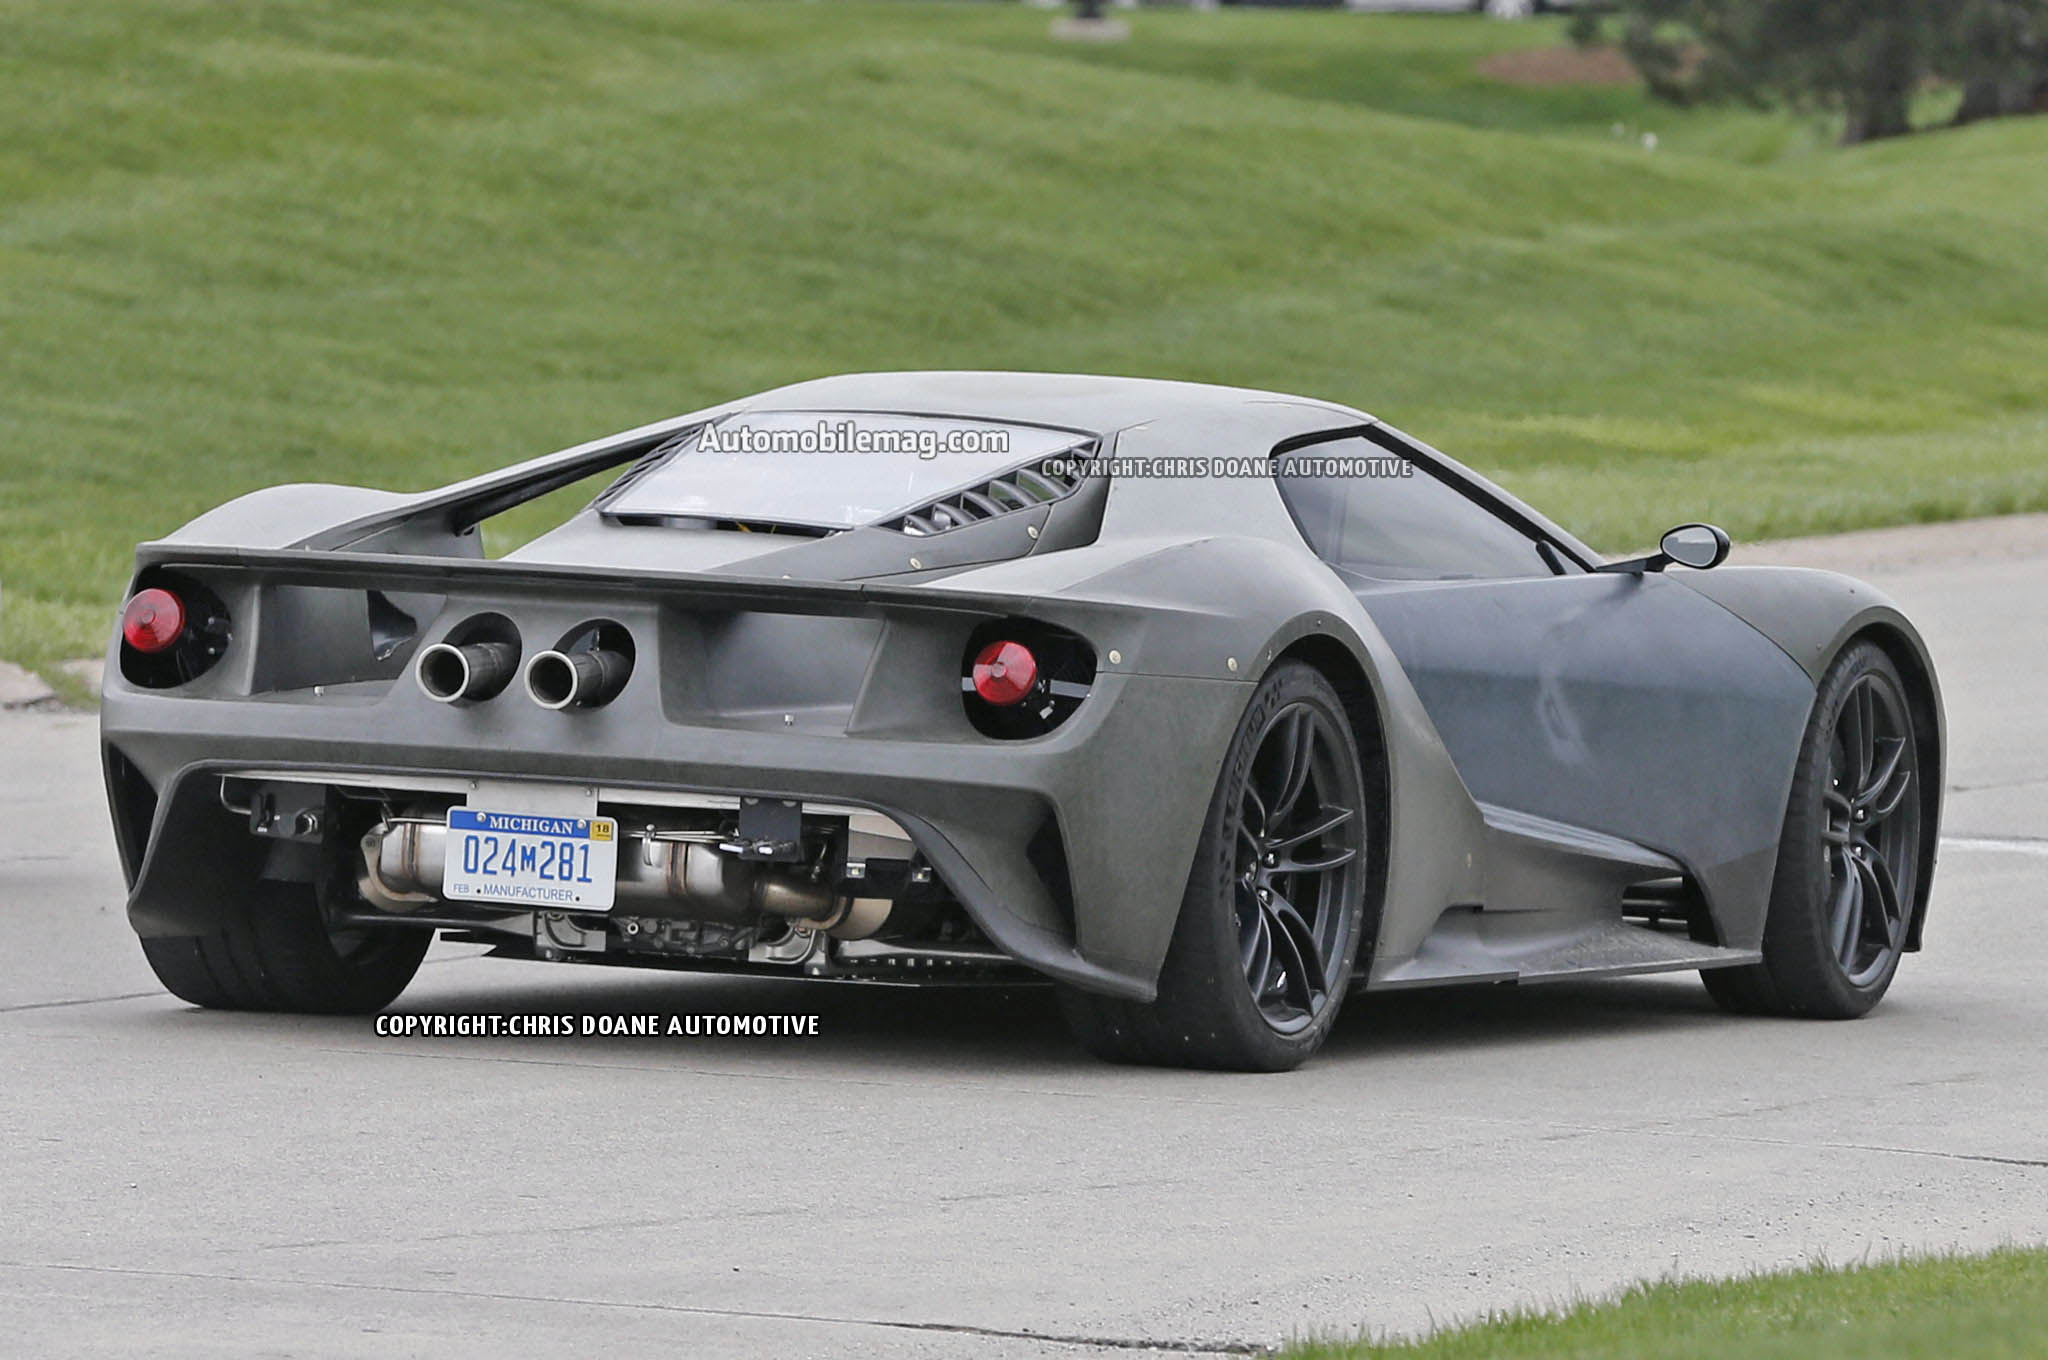 2017 ford gt prototype spied testing. Black Bedroom Furniture Sets. Home Design Ideas